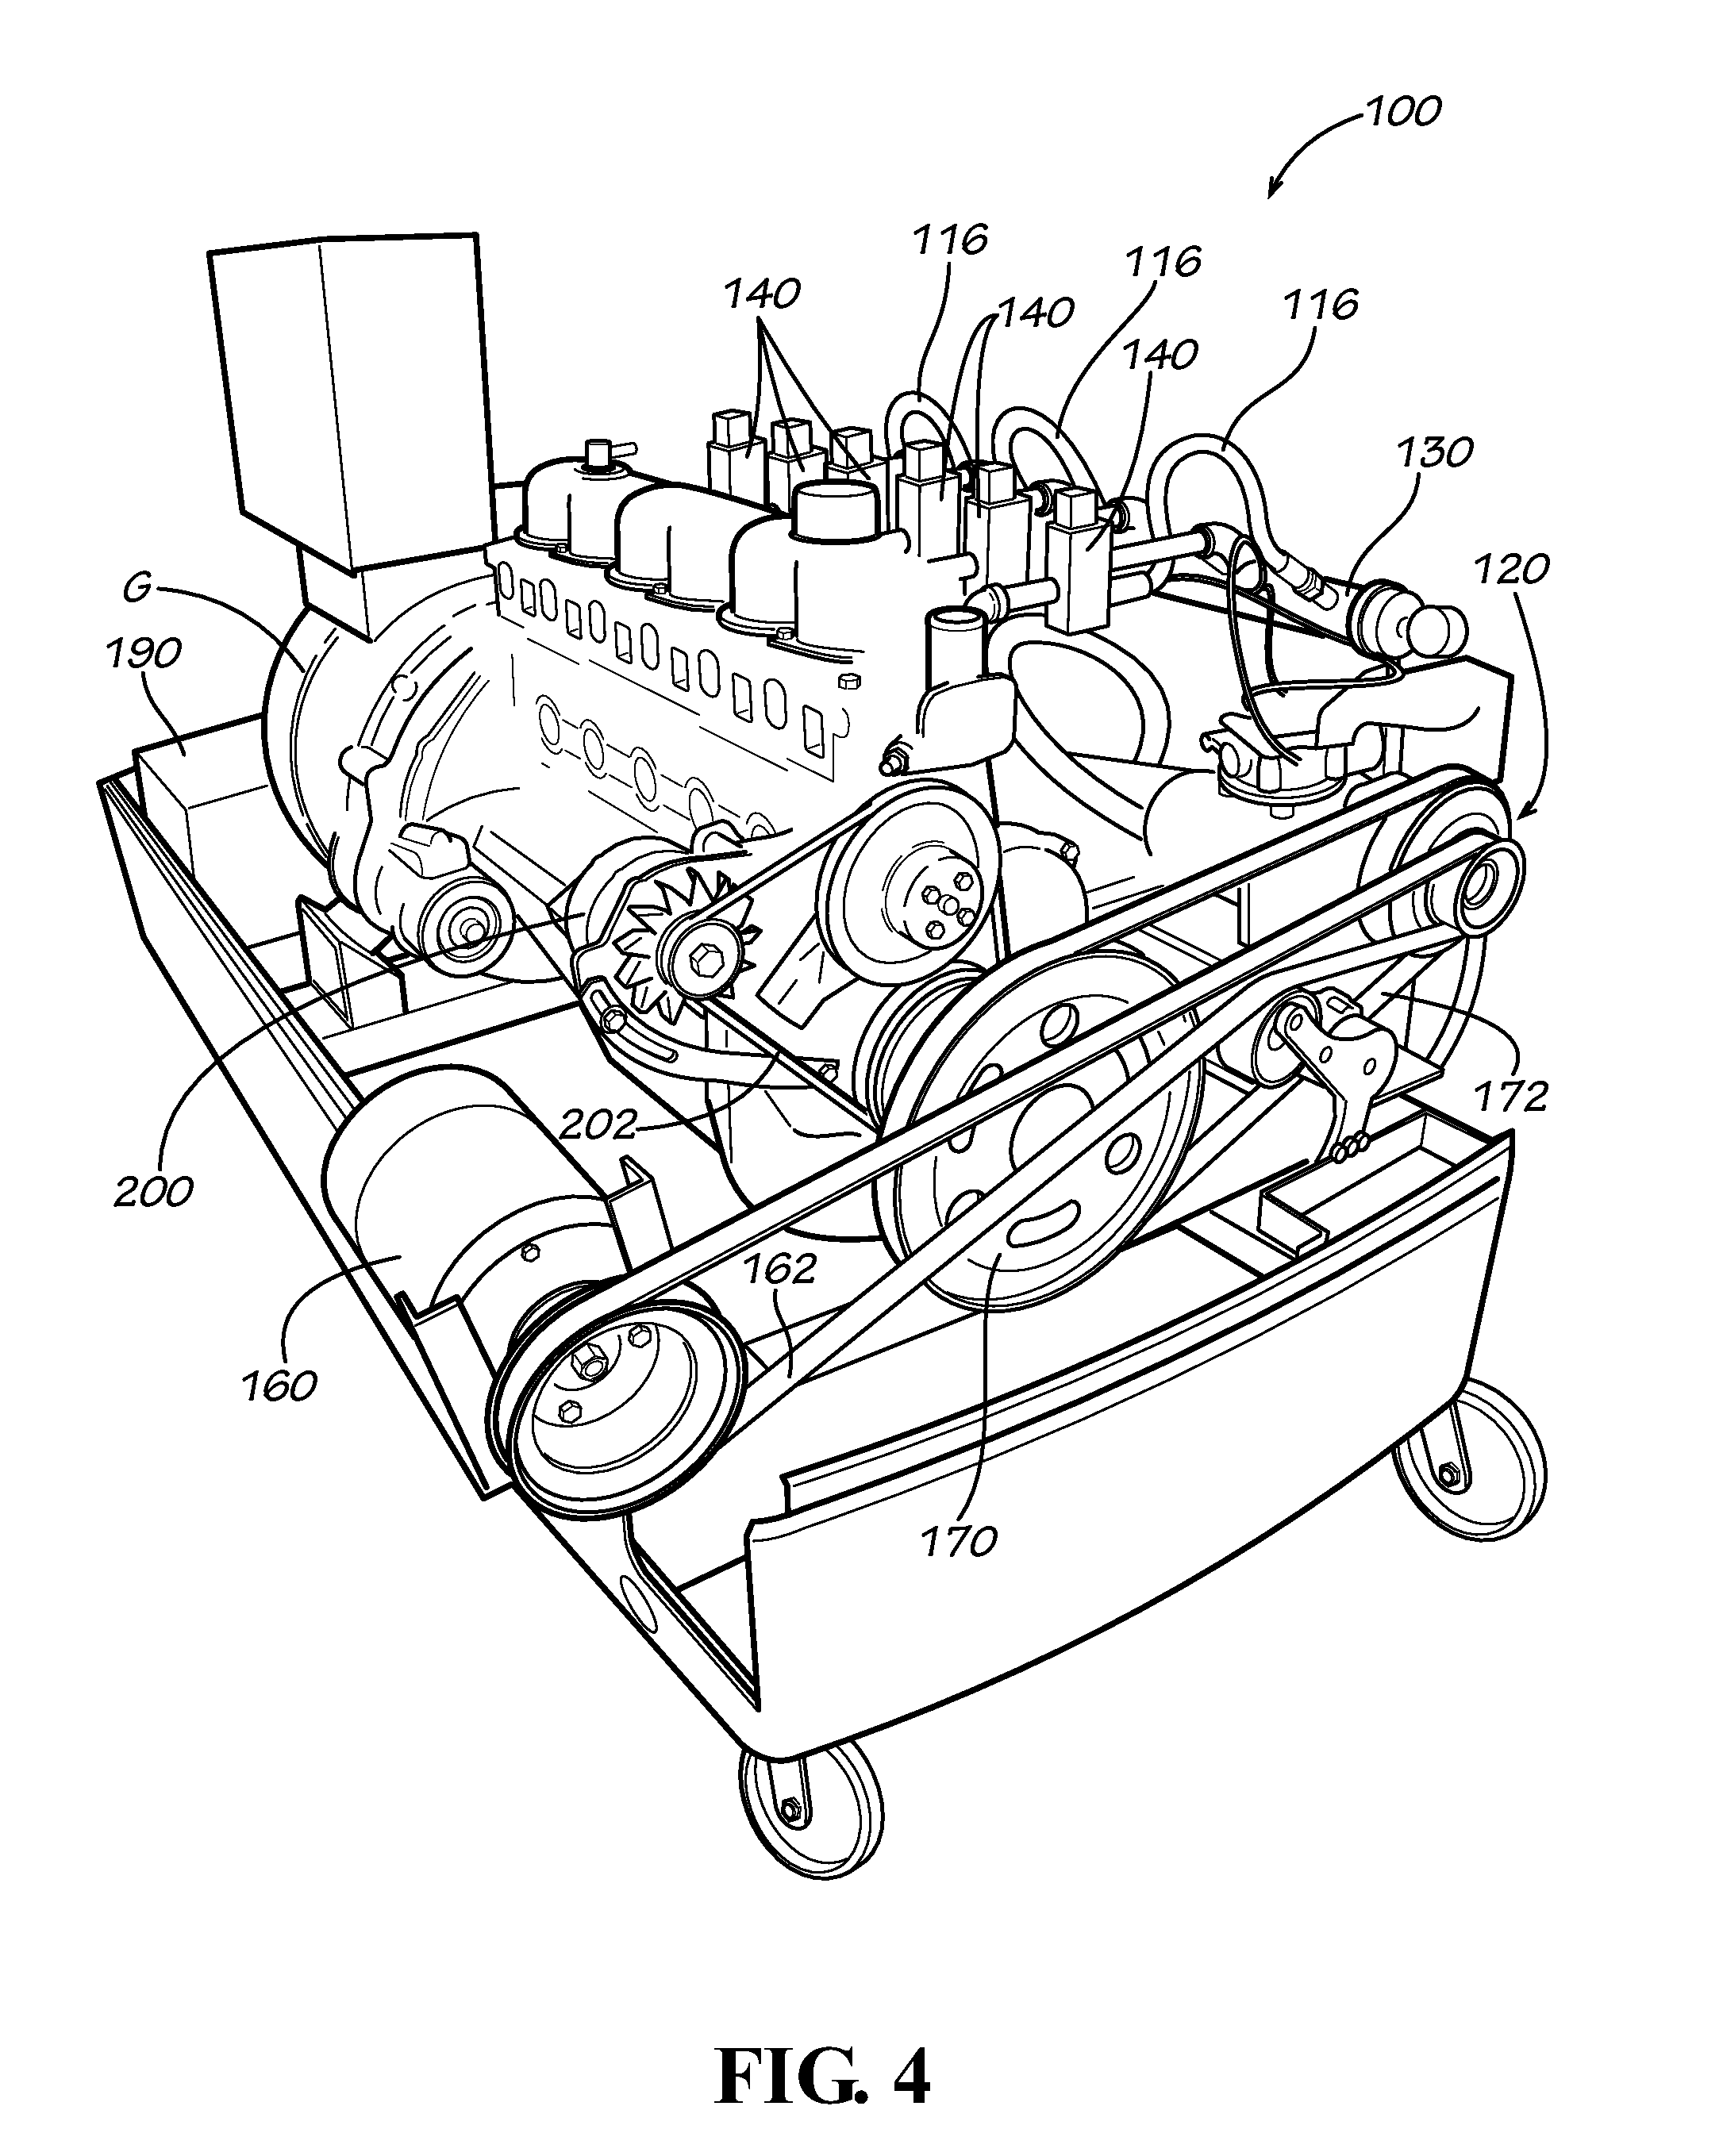 Honda 5 Hp Horizontal Shaft Engine as well 10 Hp Teseh Engine Parts Diagram besides Briggs And Stratton 8 Hp Electric Start Wiring Diagram together with Briggs And Stratton Carb moreover Engine Wiring Diagrams Also Briggs Stratton 1 2 Hp. on 5 hp teseh engine diagram